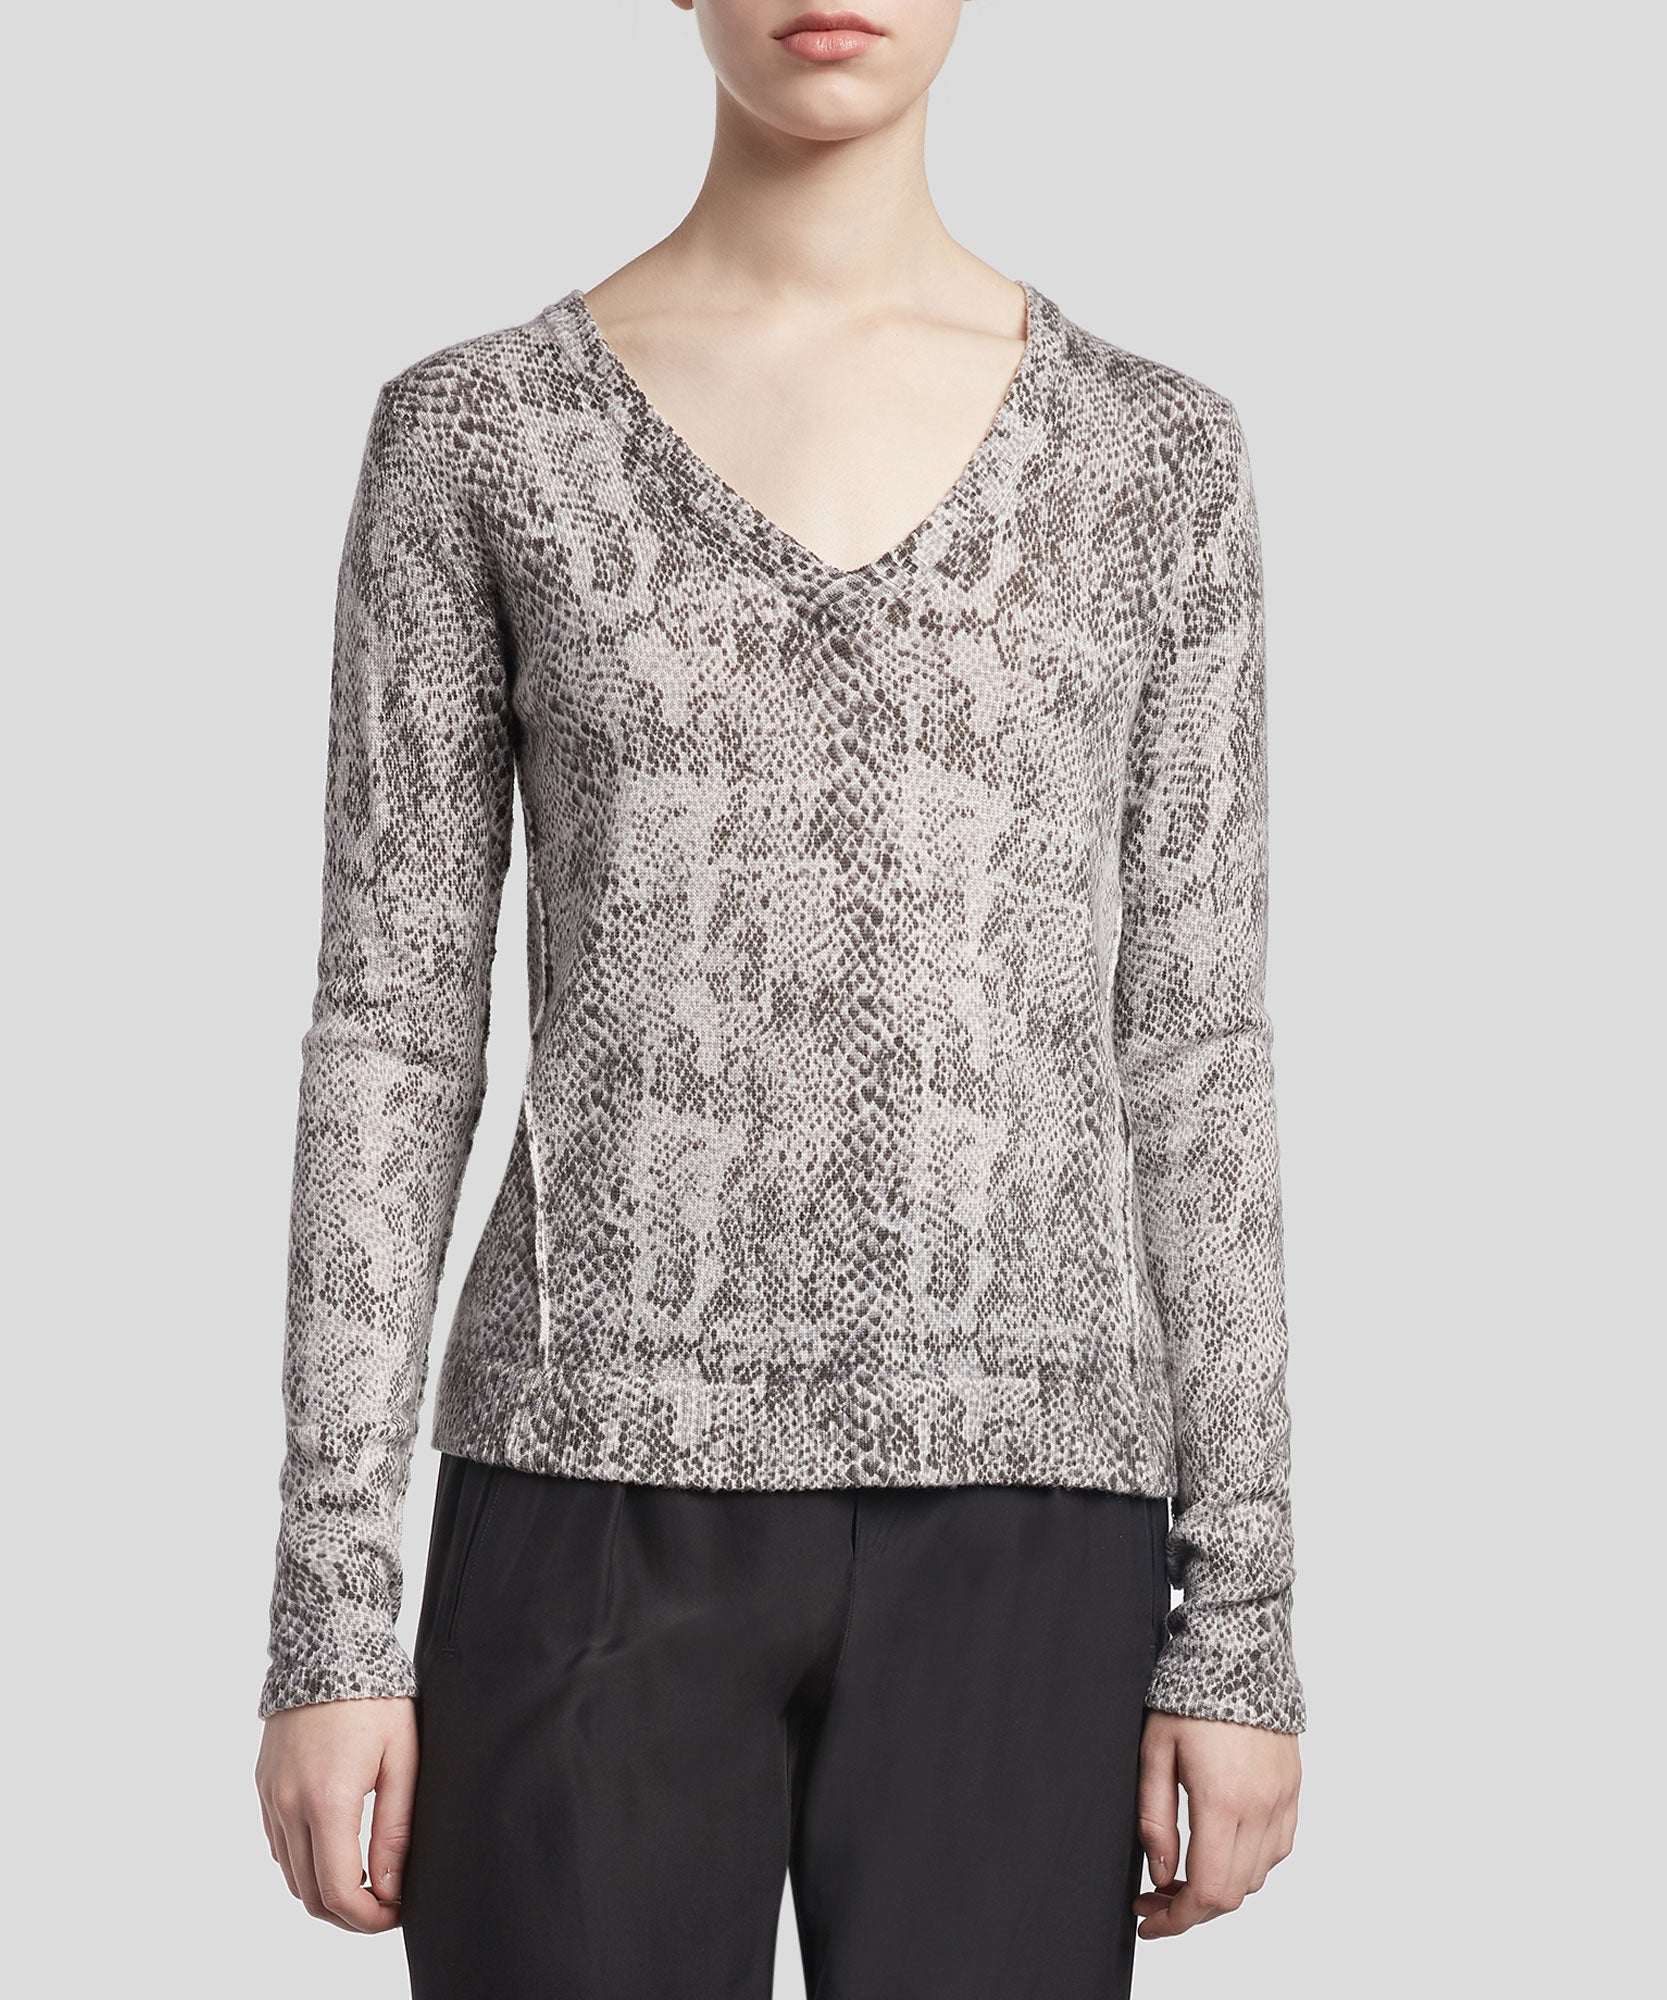 Haze and Pavement Combo Cashmere Blend Snake Print V-Neck Sweater - Women's Luxe Sweater by ATM Anthony Thomas Melillo